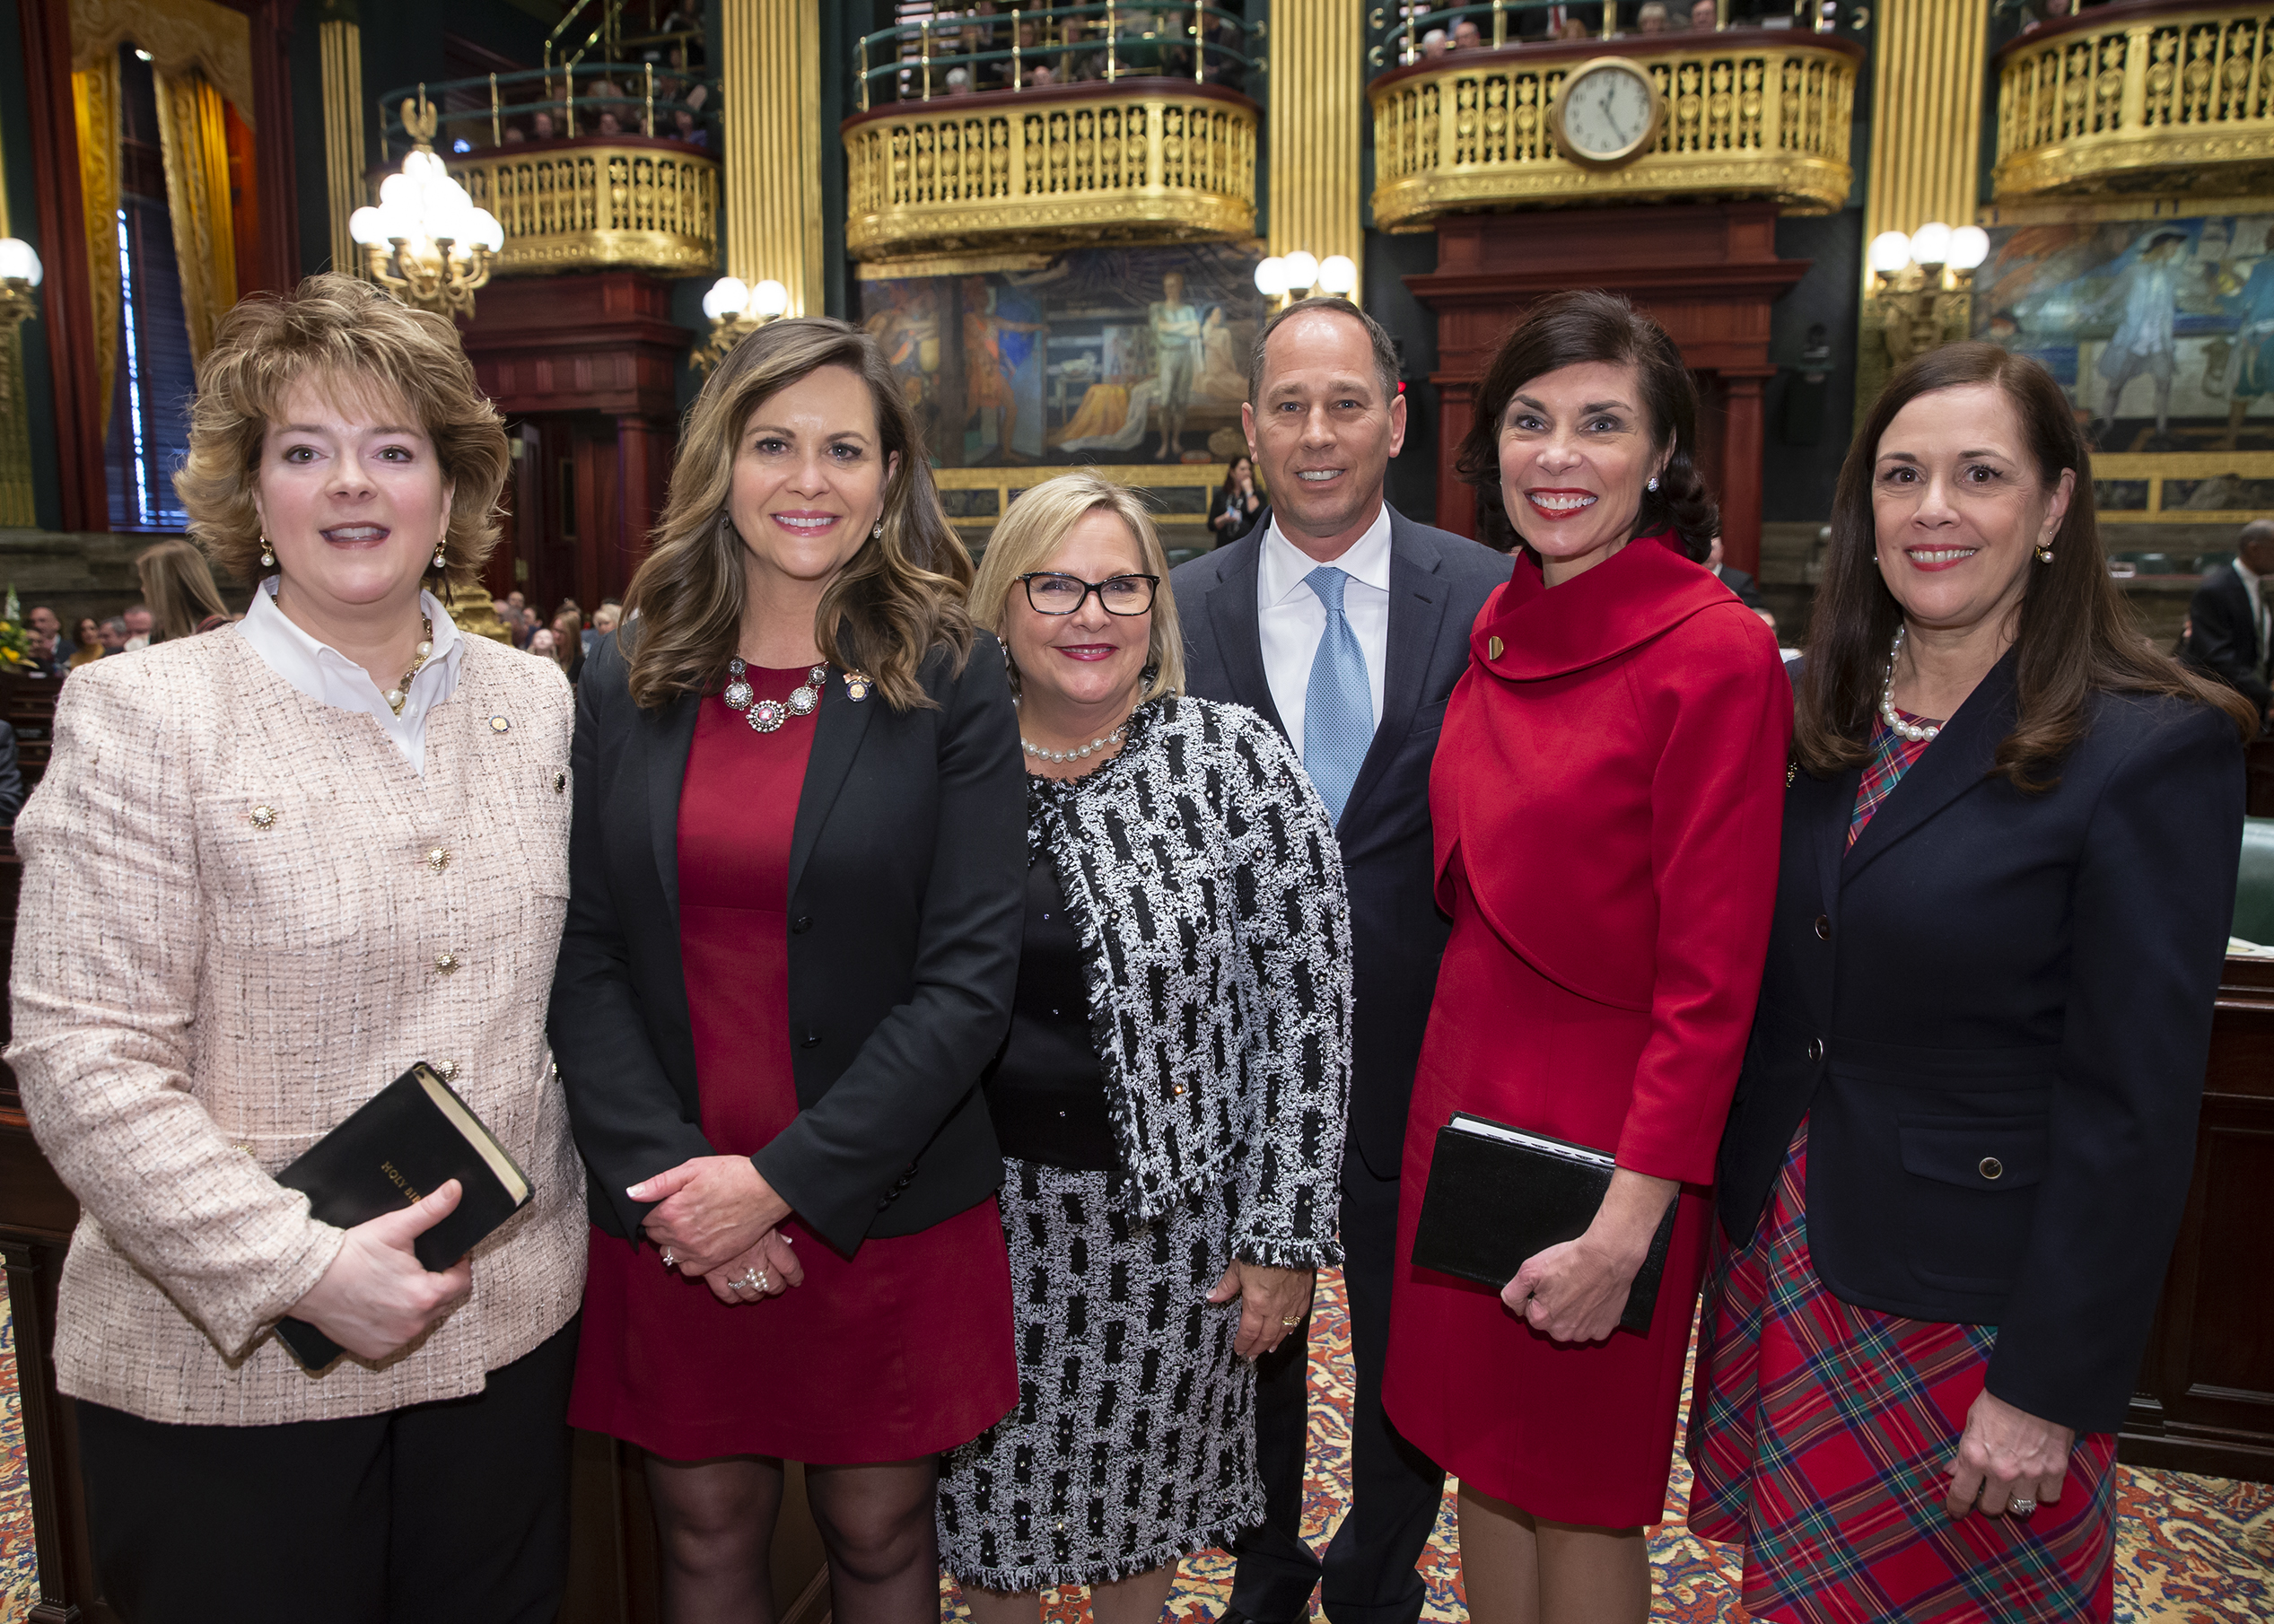 Baker Named To Chair State Senate Judiciary Committee